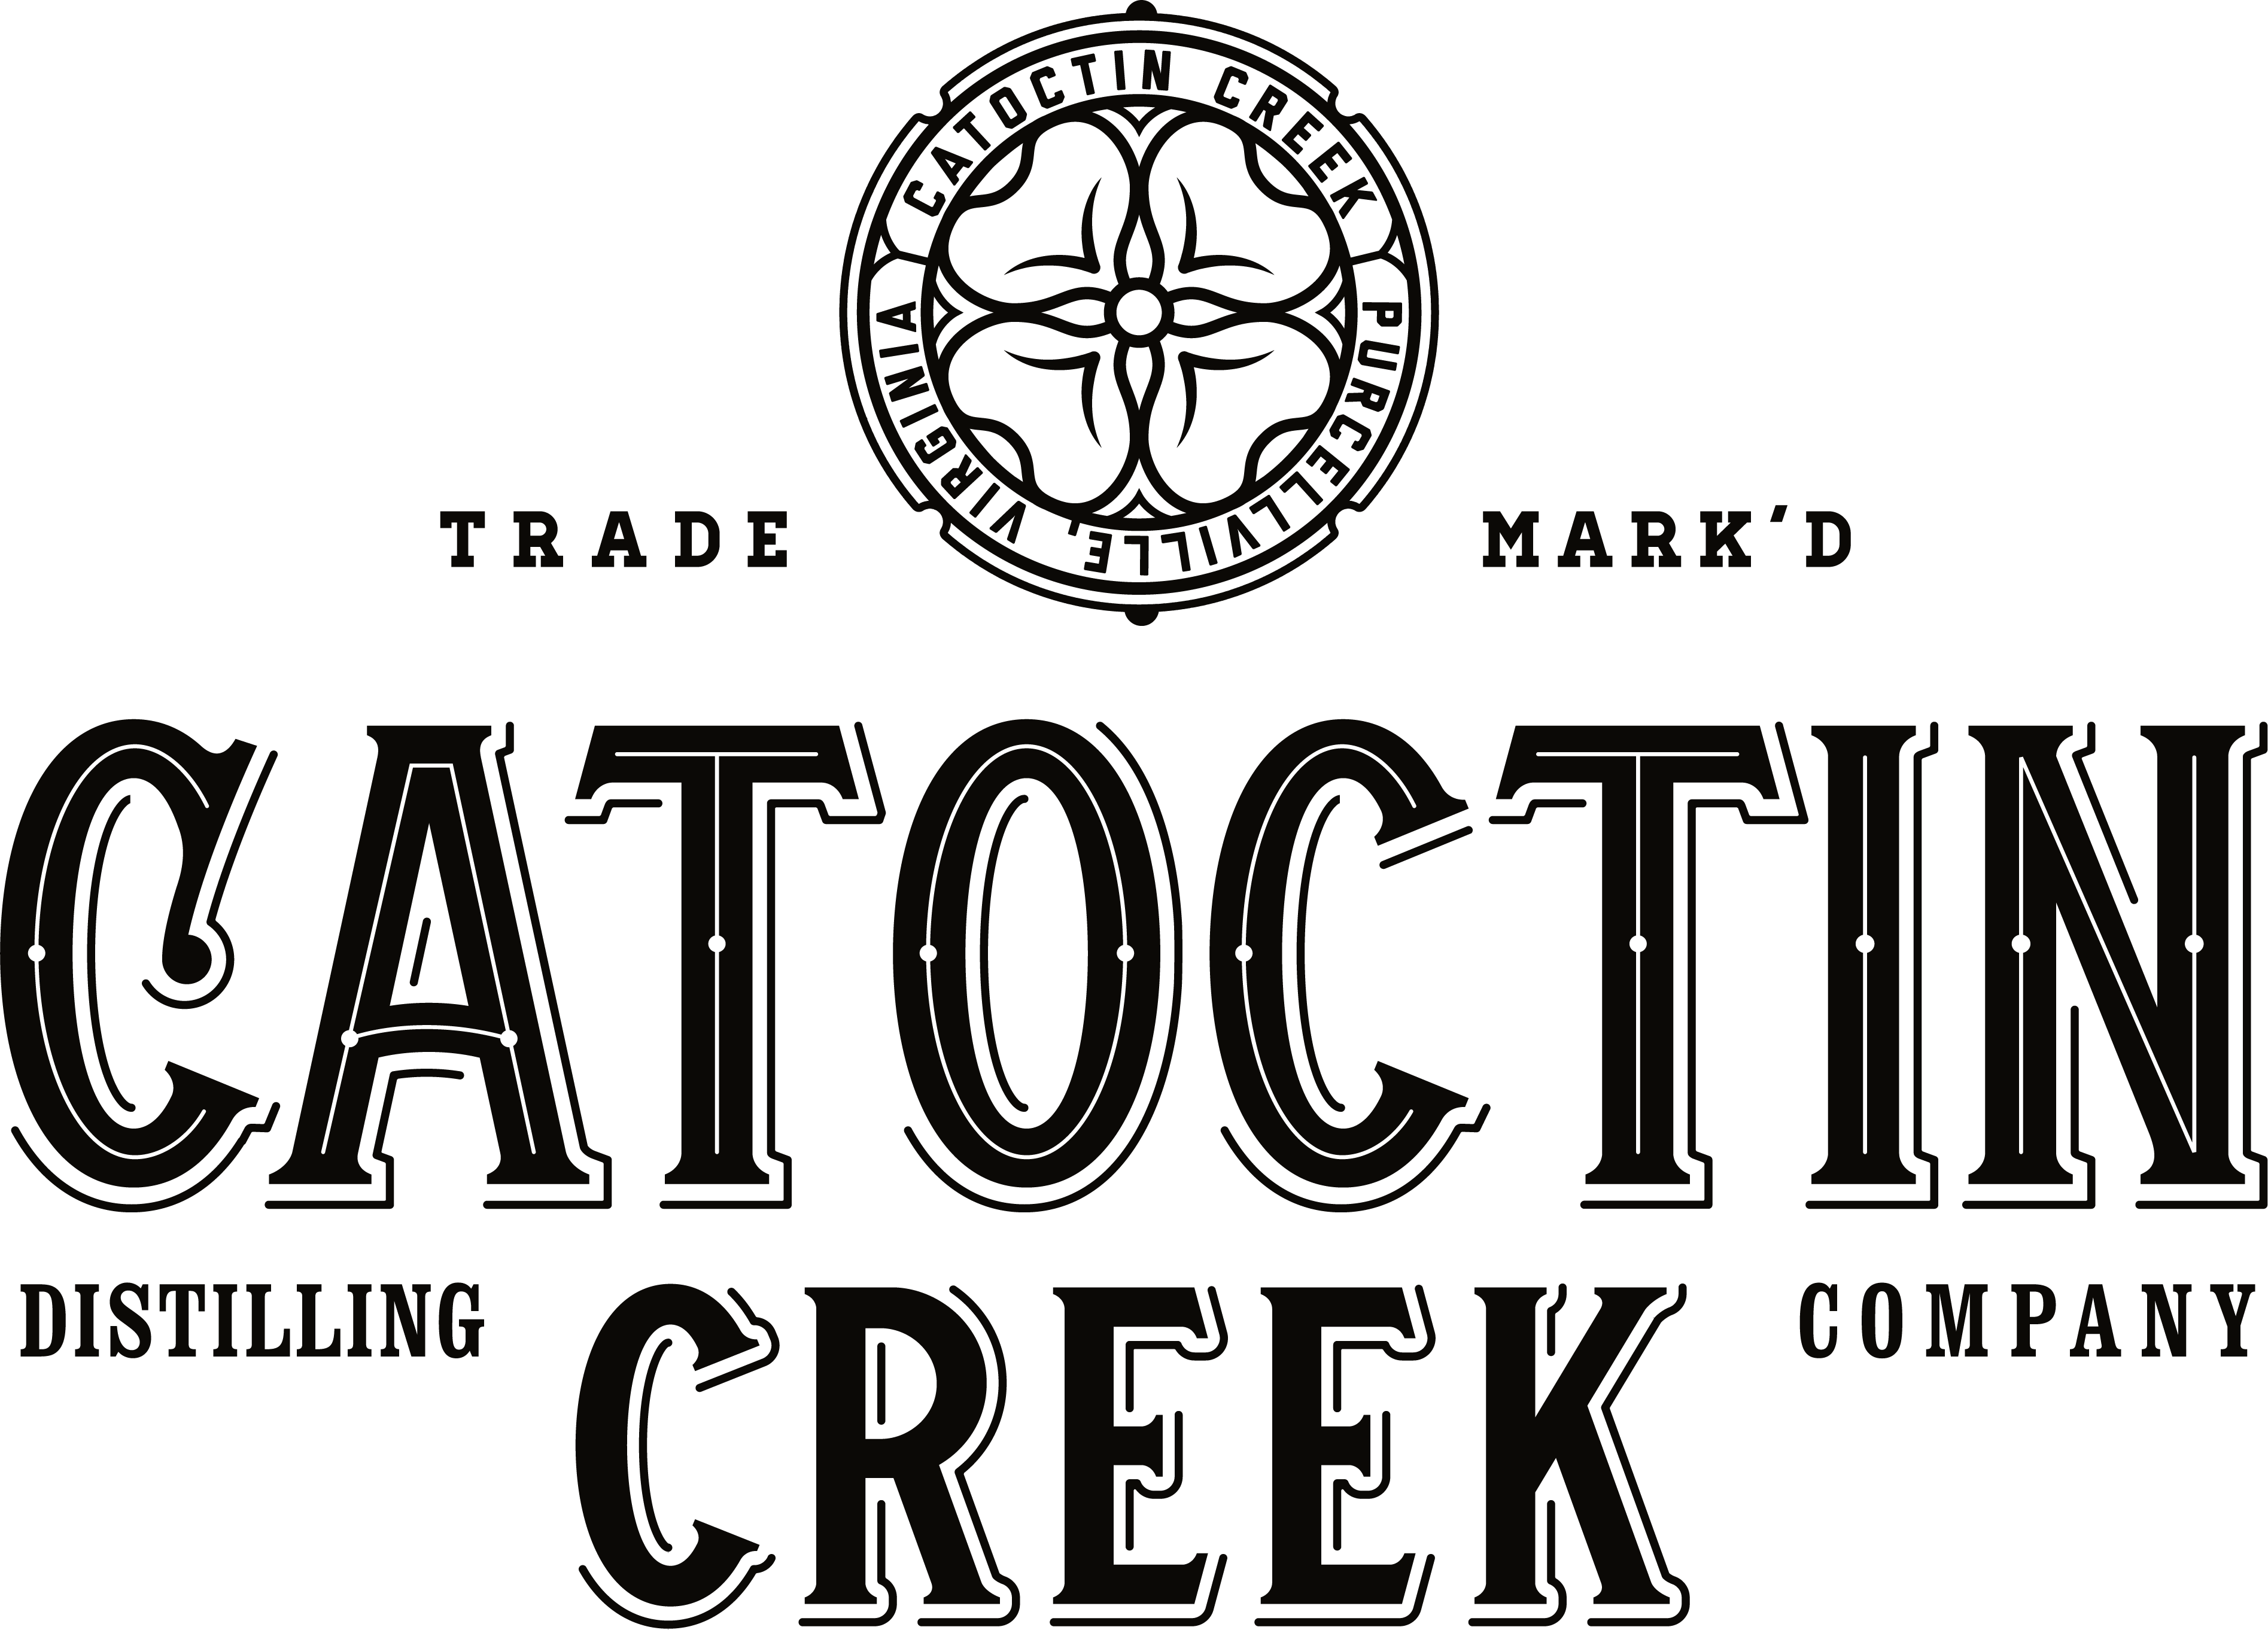 Roundel of Catoctin Creek Distillery, Purcellville, Virginia